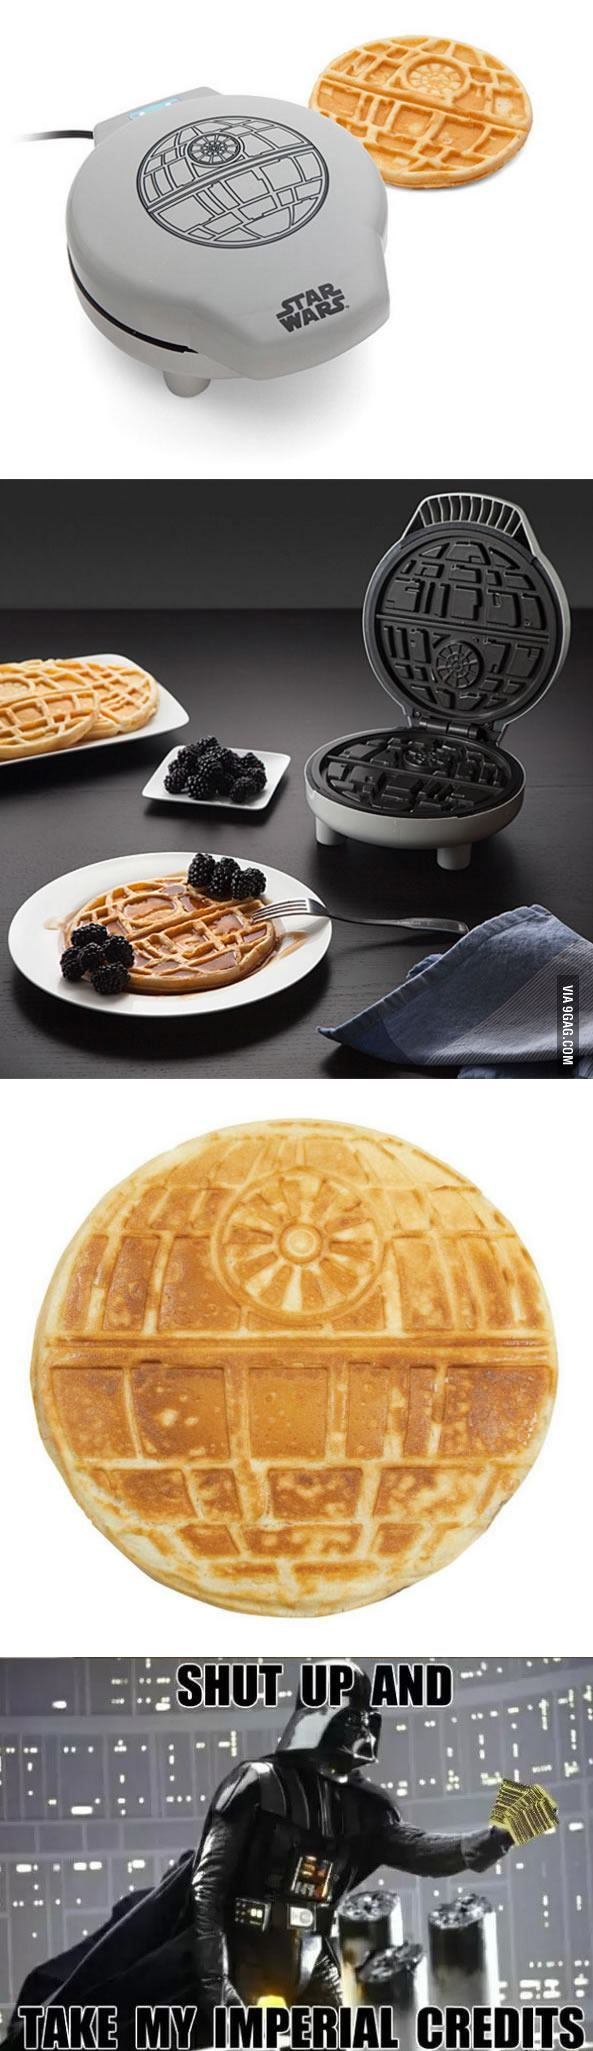 Star Wars Waffle Maker That Bakes Death Stars For Breakfast